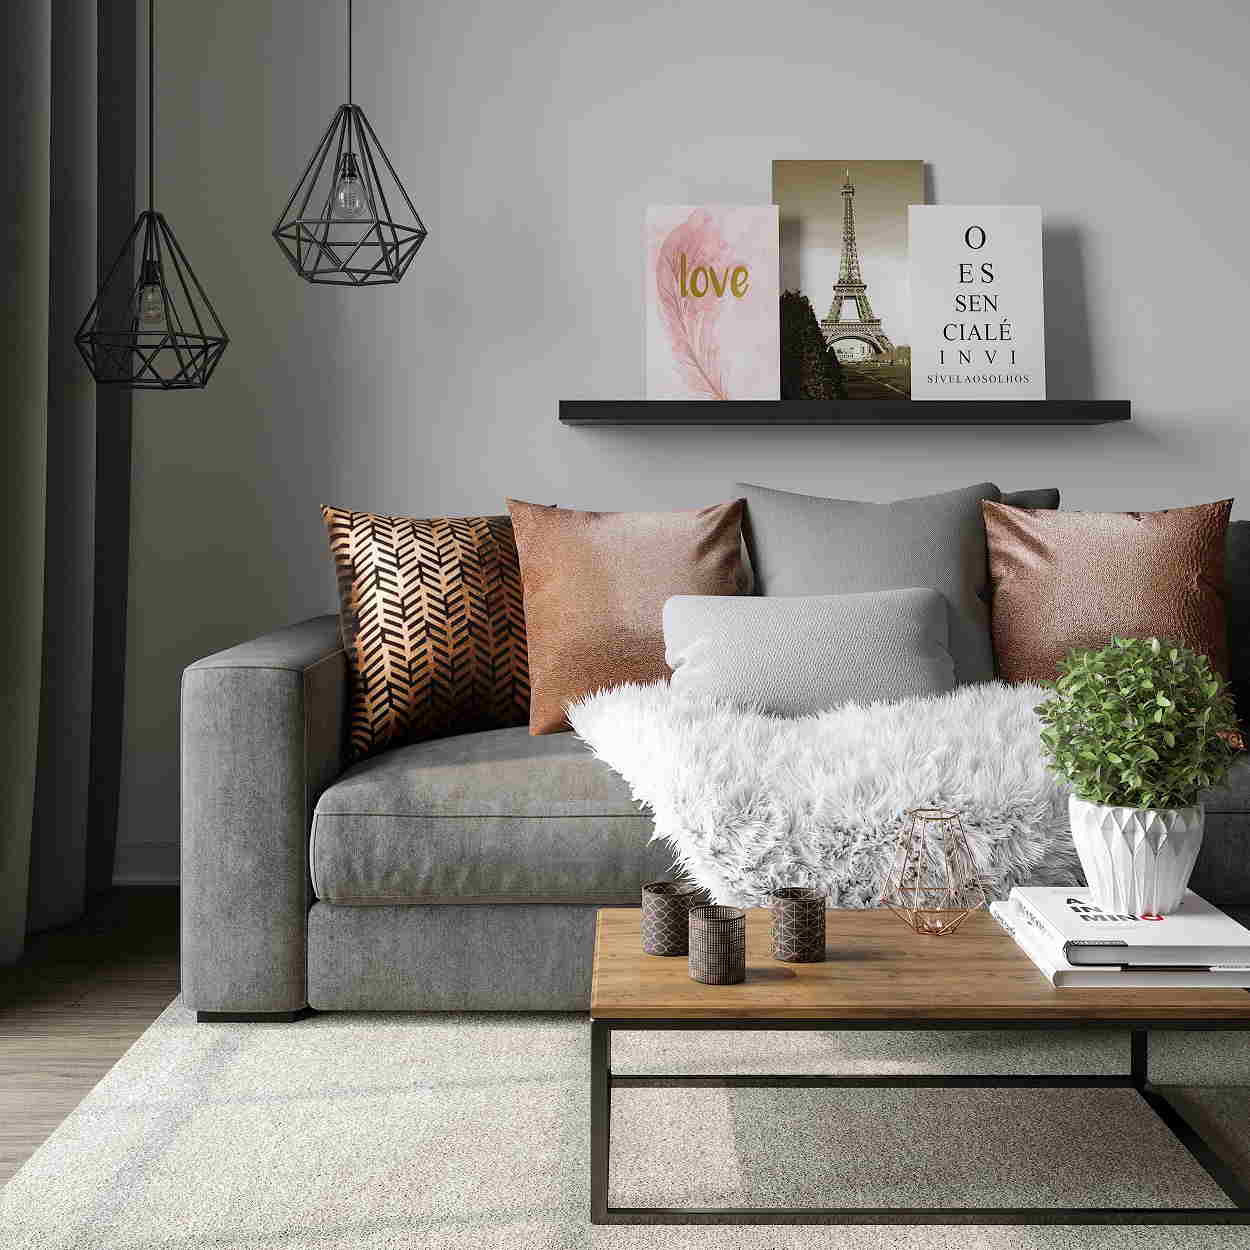 Adapt the Color to your Decoration Concept